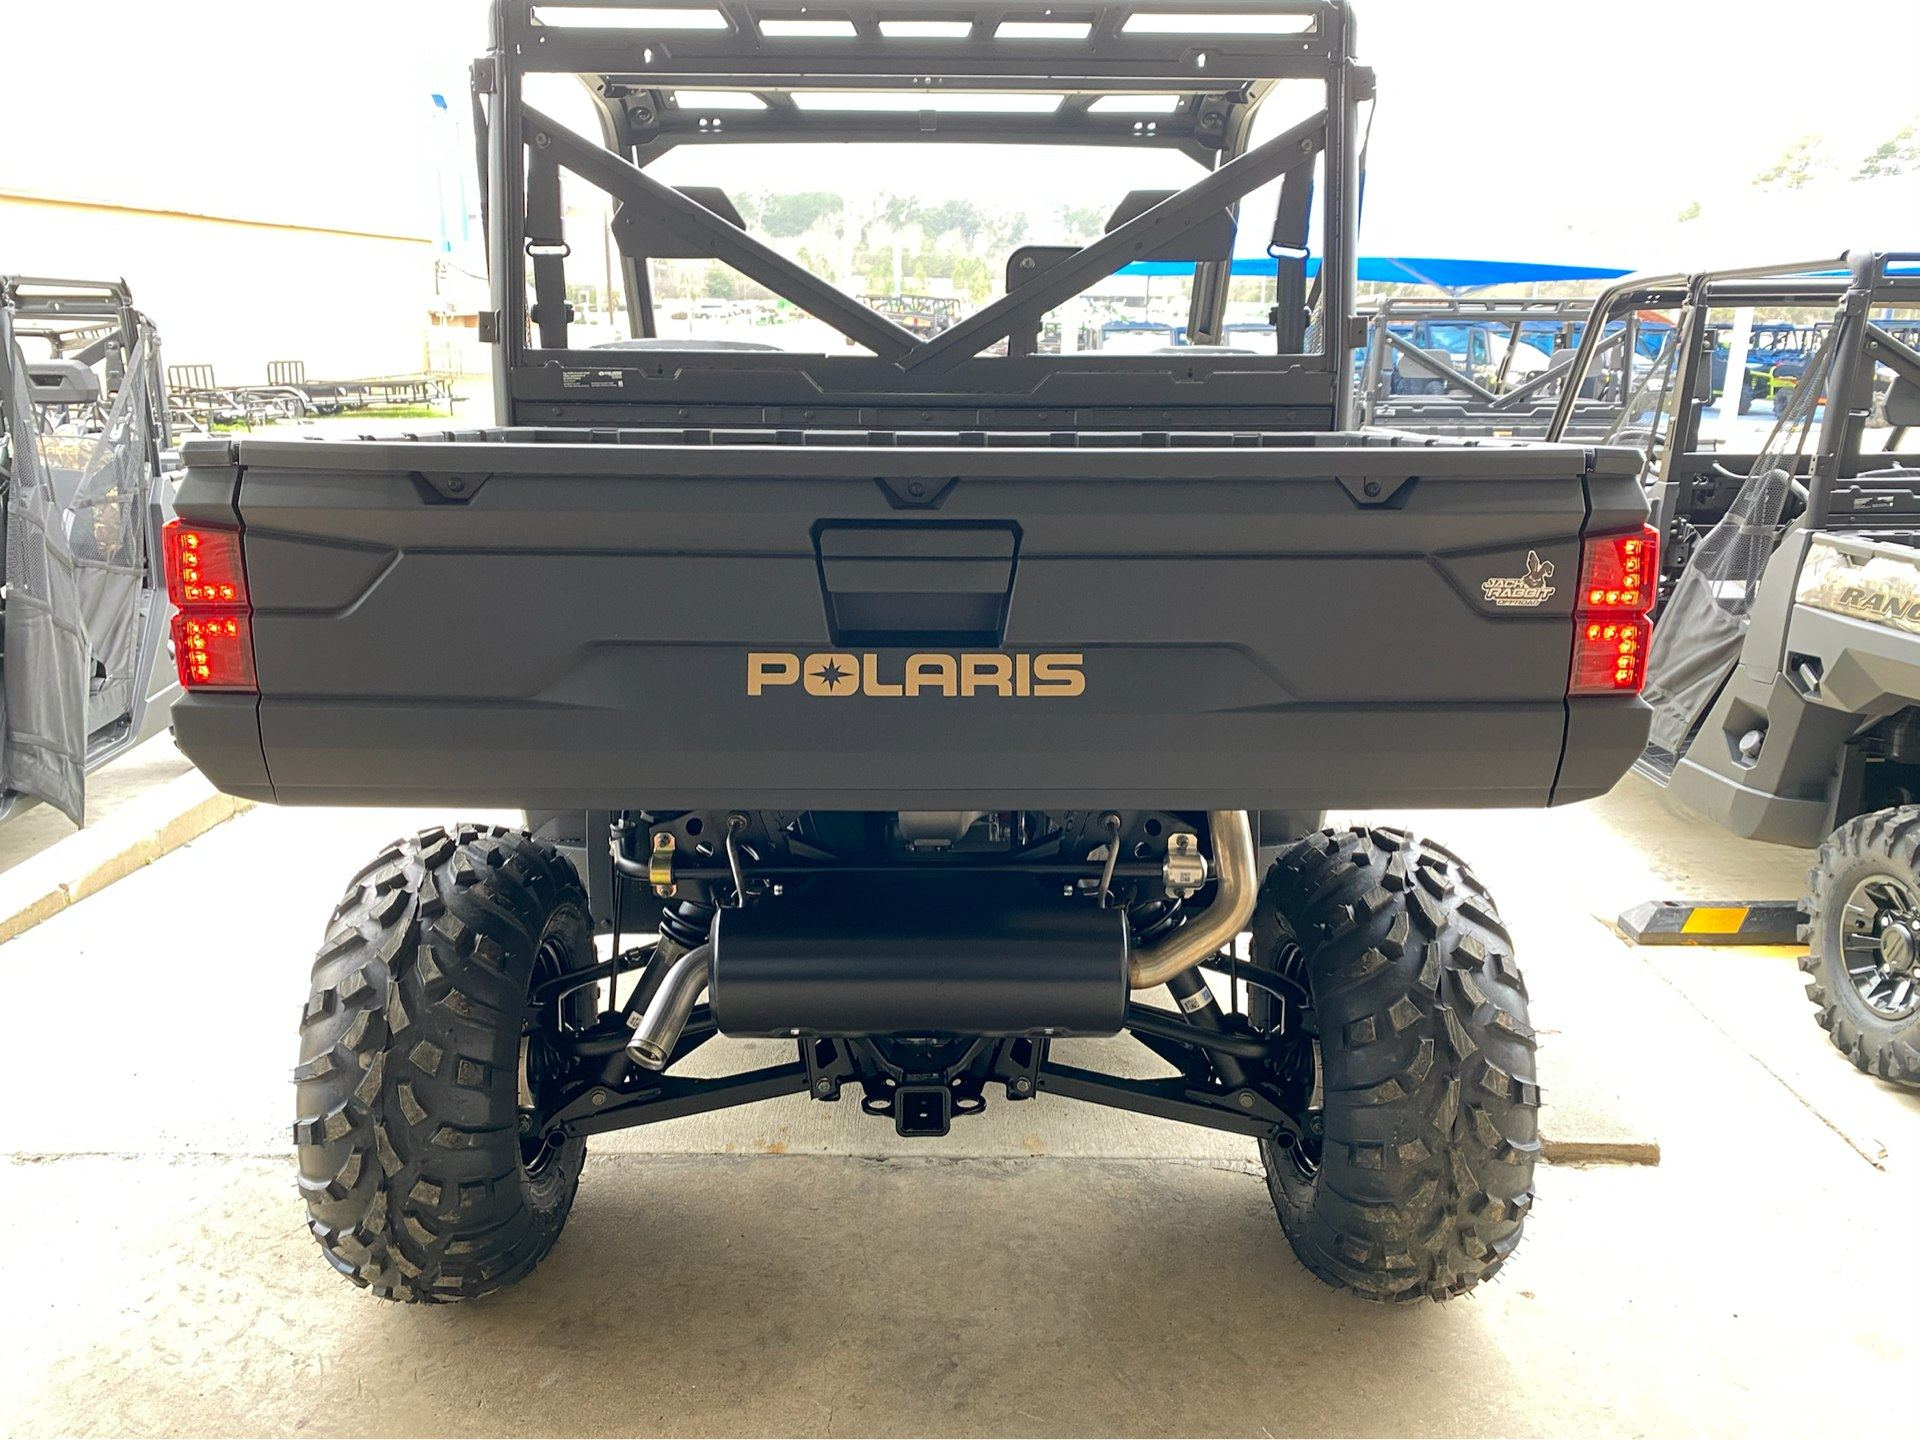 2020 Polaris Ranger 1000 EPS in Marshall, Texas - Photo 6